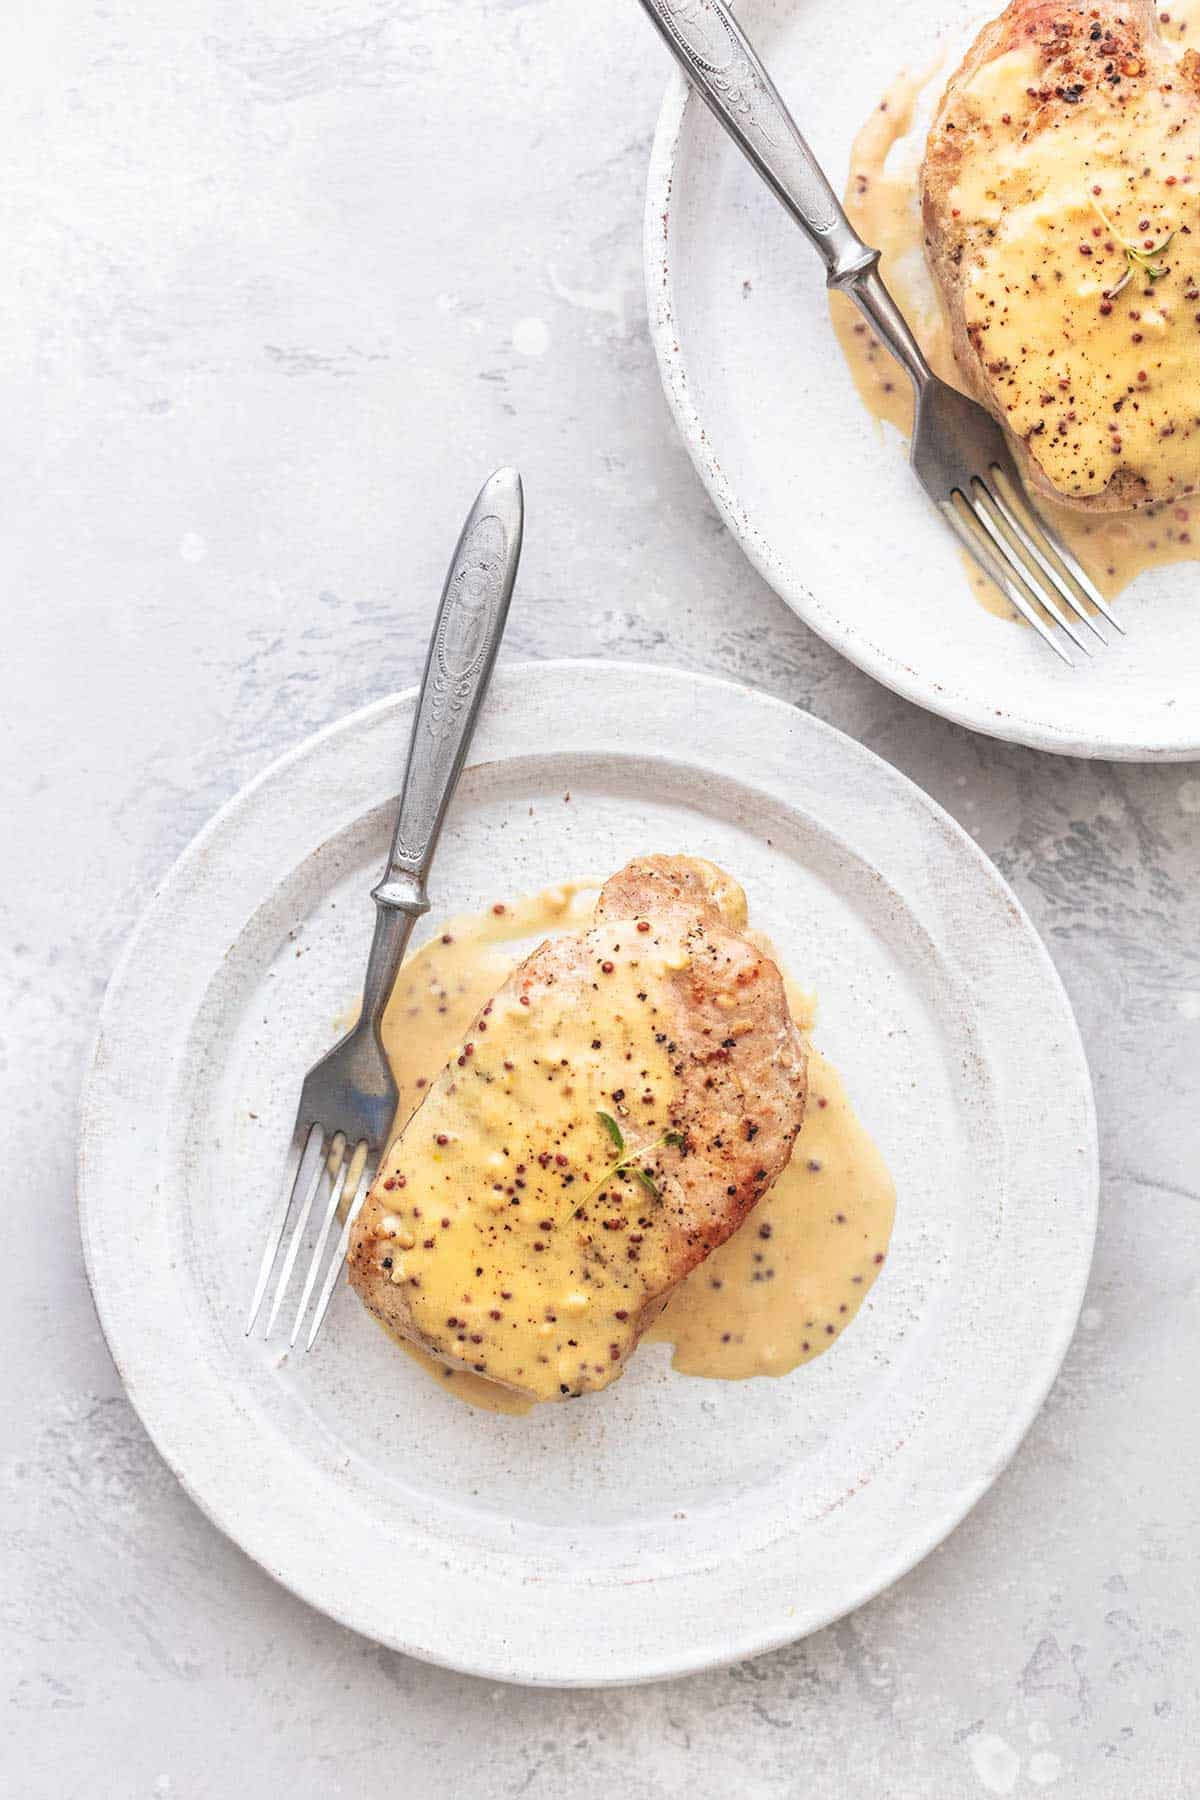 pork chops with cream sauce on white plates